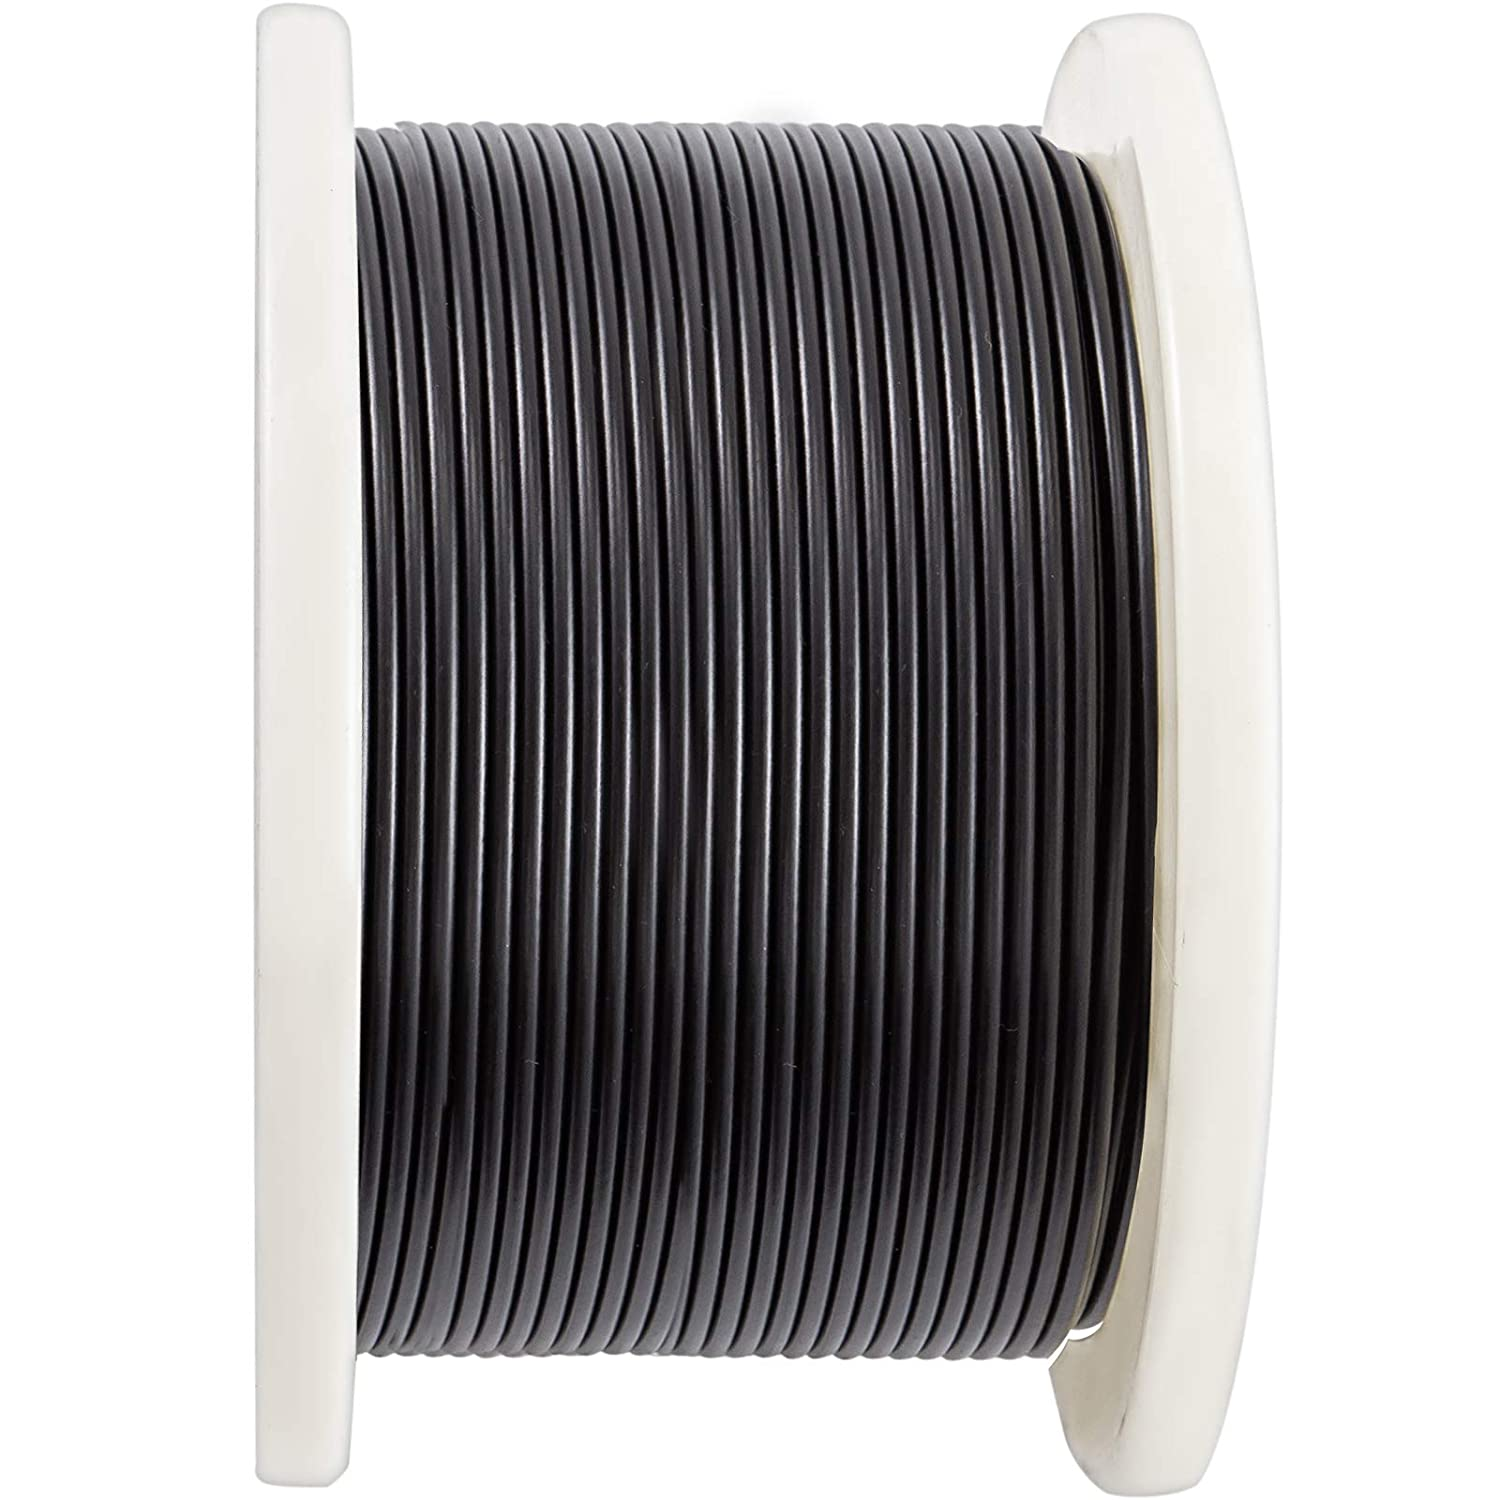 VEVOR Vinyl Coated Wire Rope 328Ft Reel Vinyl Coated Cable w// 7x7 Construction 1//16Inch Coated Dia 3//32Inch 304 Stainless Steel Wire Cable Wire Dia 372lbs Breaking Strength for Home Garden